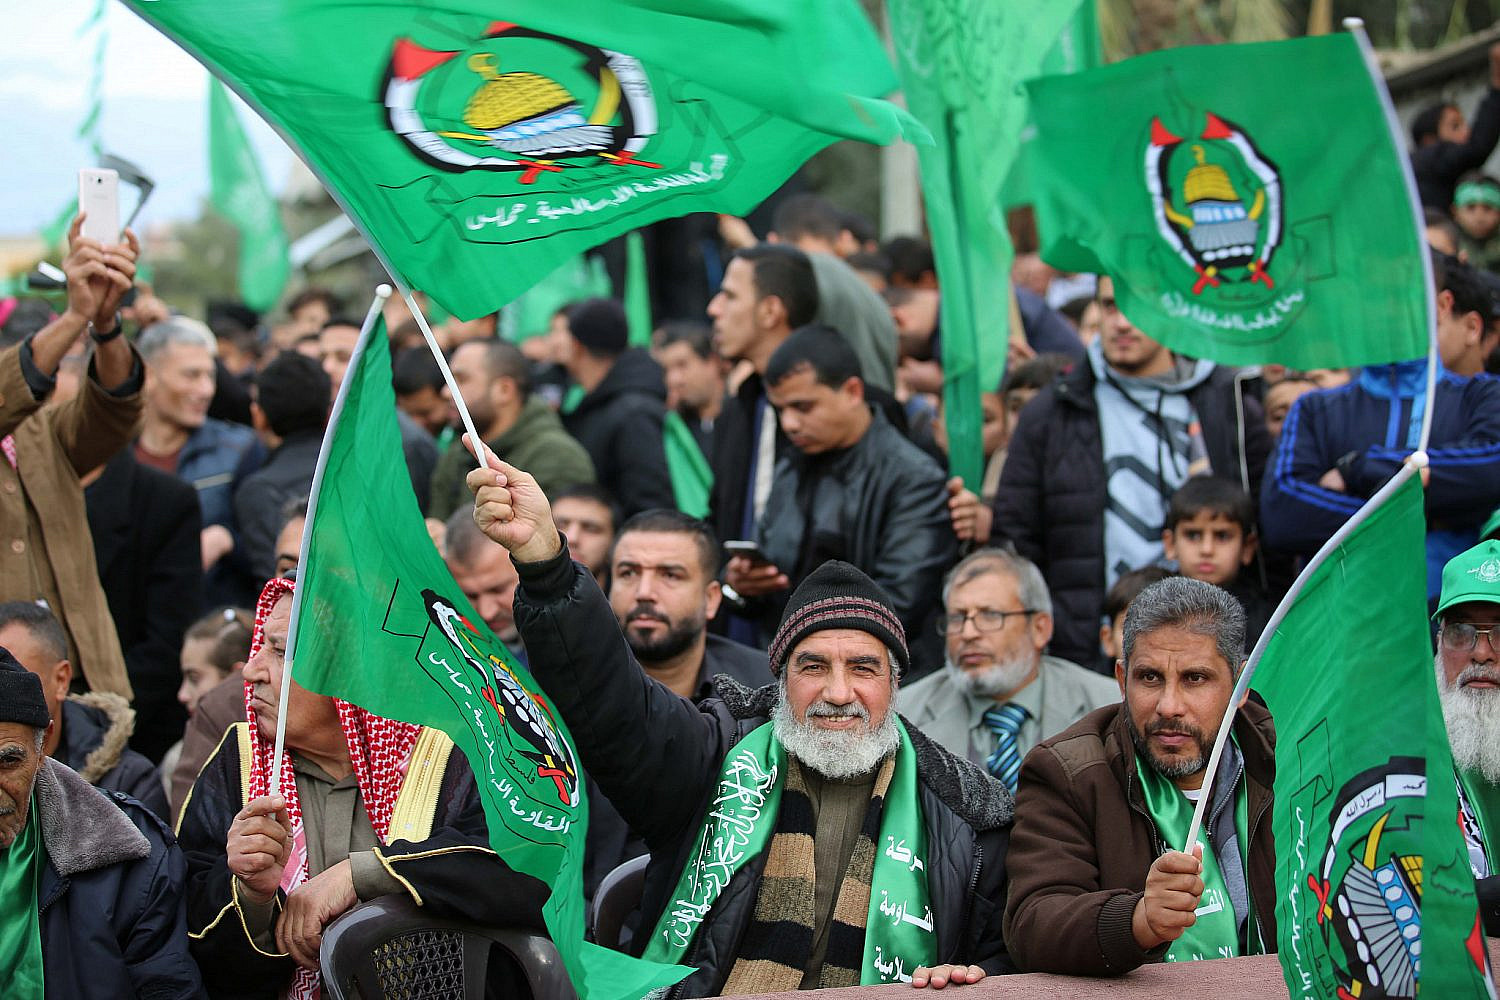 Palestinians attend a Hamas rally marking the 32nd anniversary of its founding in the Nusseirat camp in central Gaza City, Dec. 15, 2019. (Hassan Jedi/Flash90)